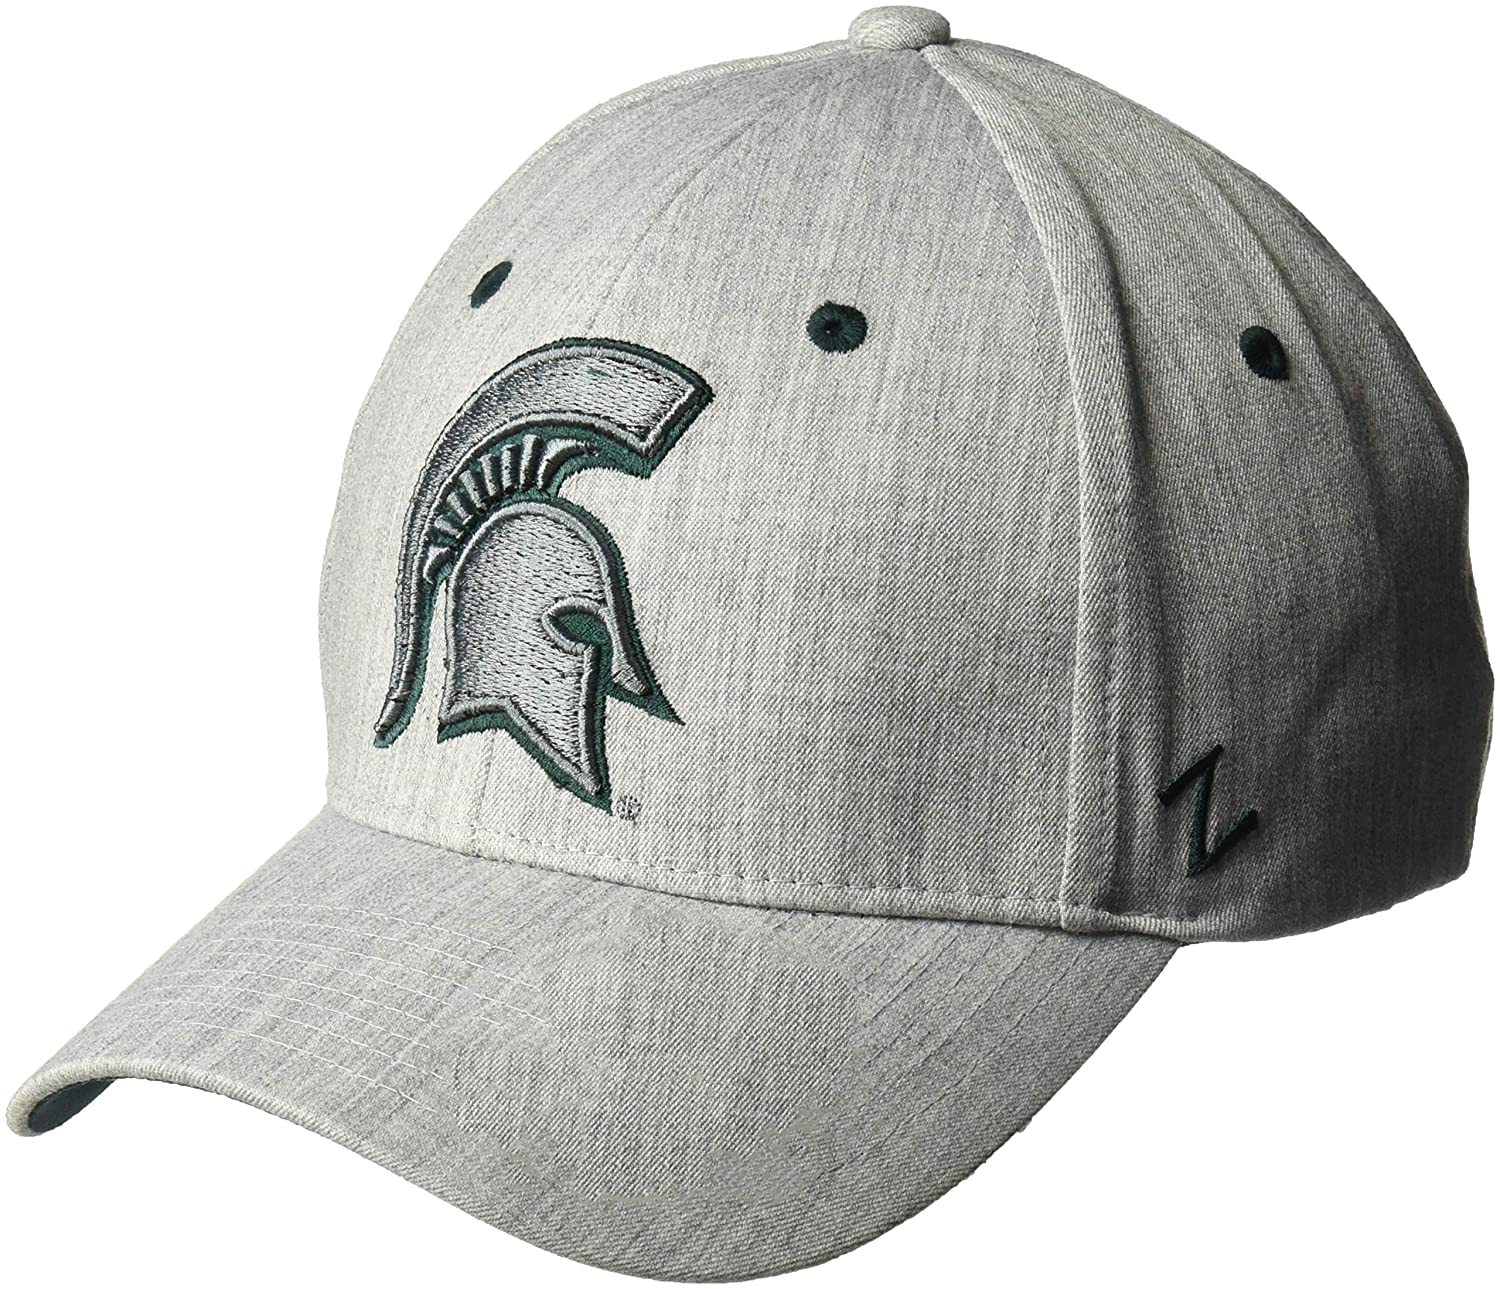 X-Large NCAA Zephyr Michigan State Spartans Mens Tailored Stretch Hat Grey